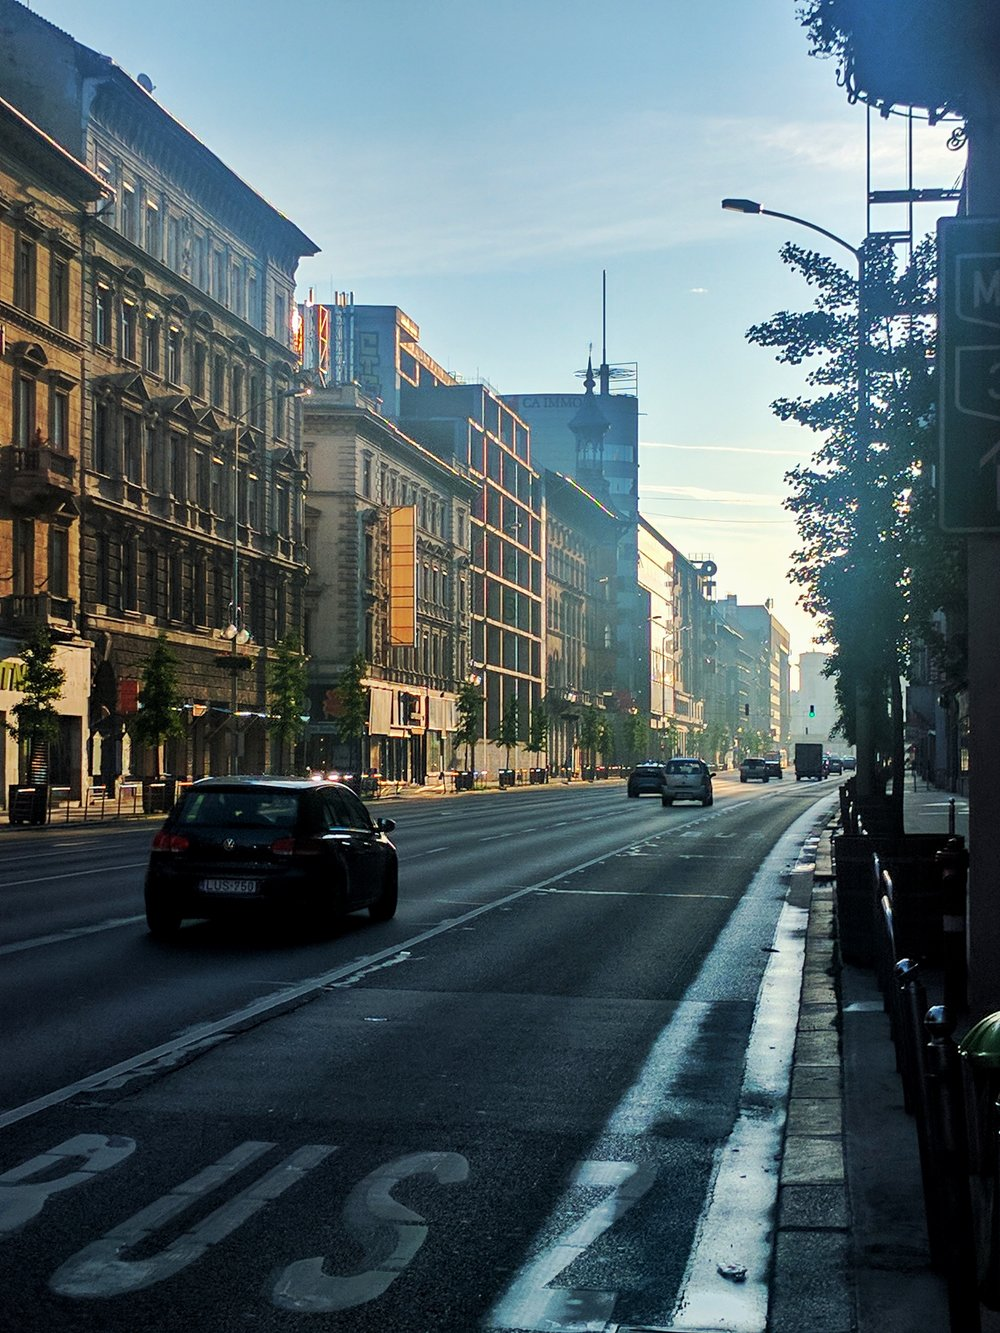 Early morning in the city